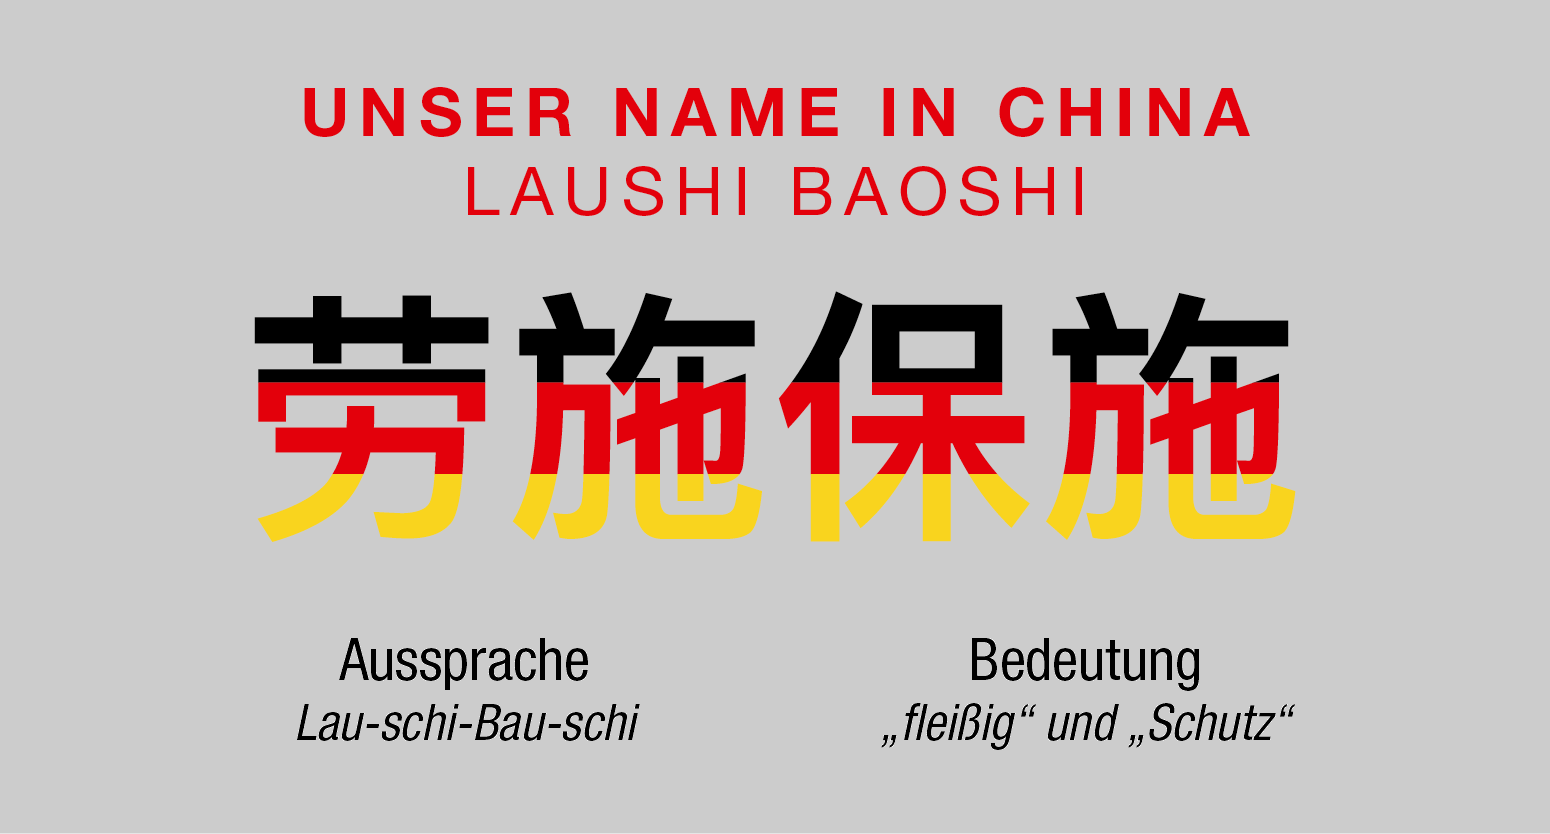 Unser Name in China